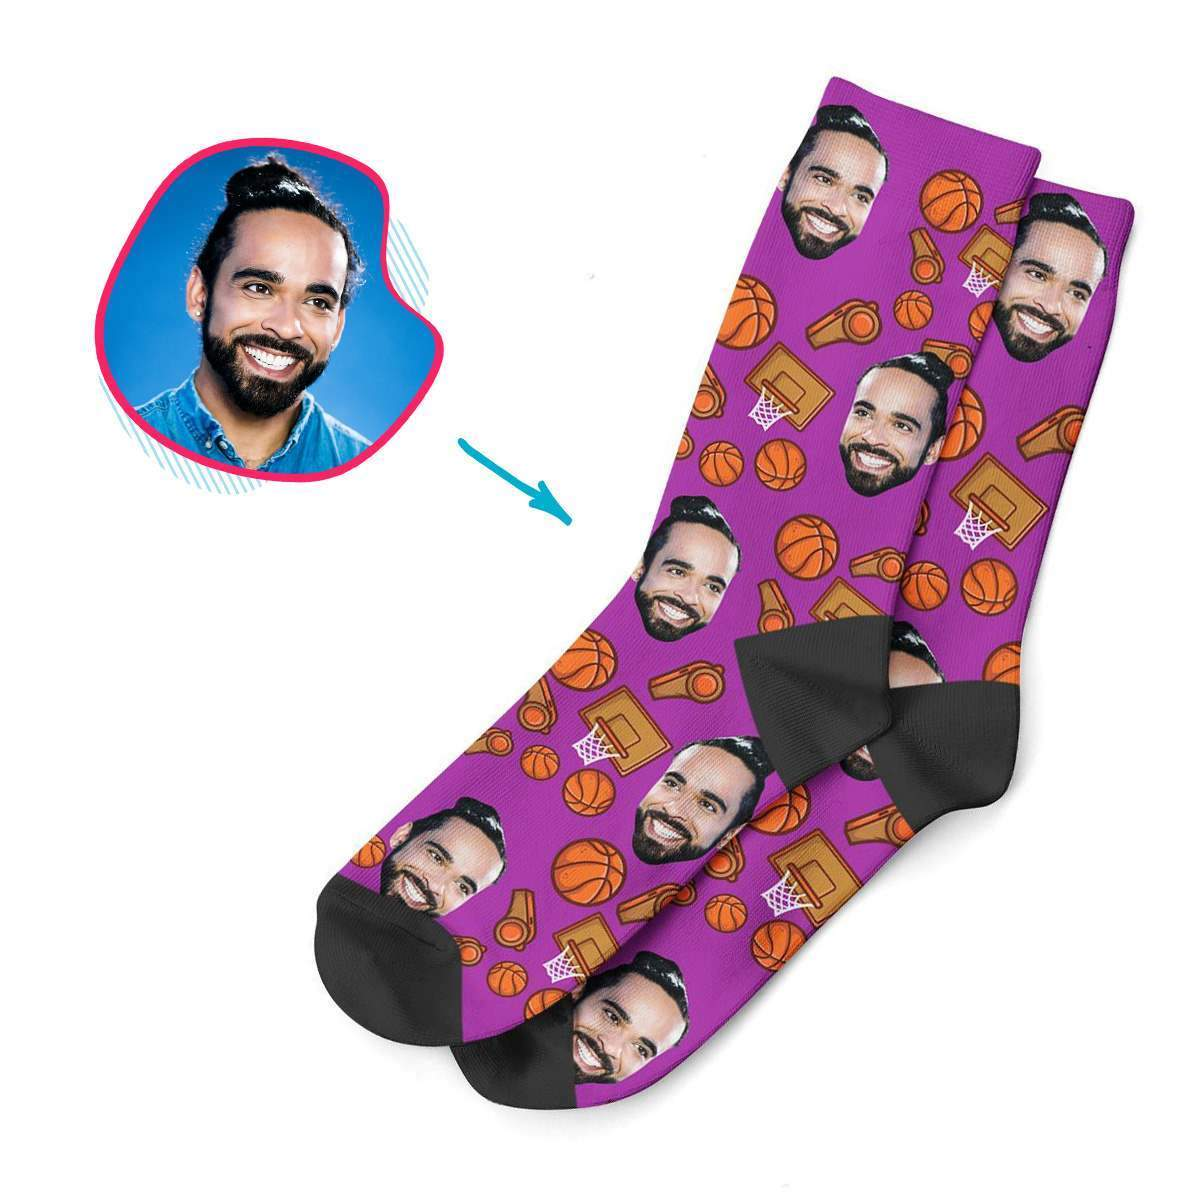 purple Basketball socks personalized with photo of face printed on them